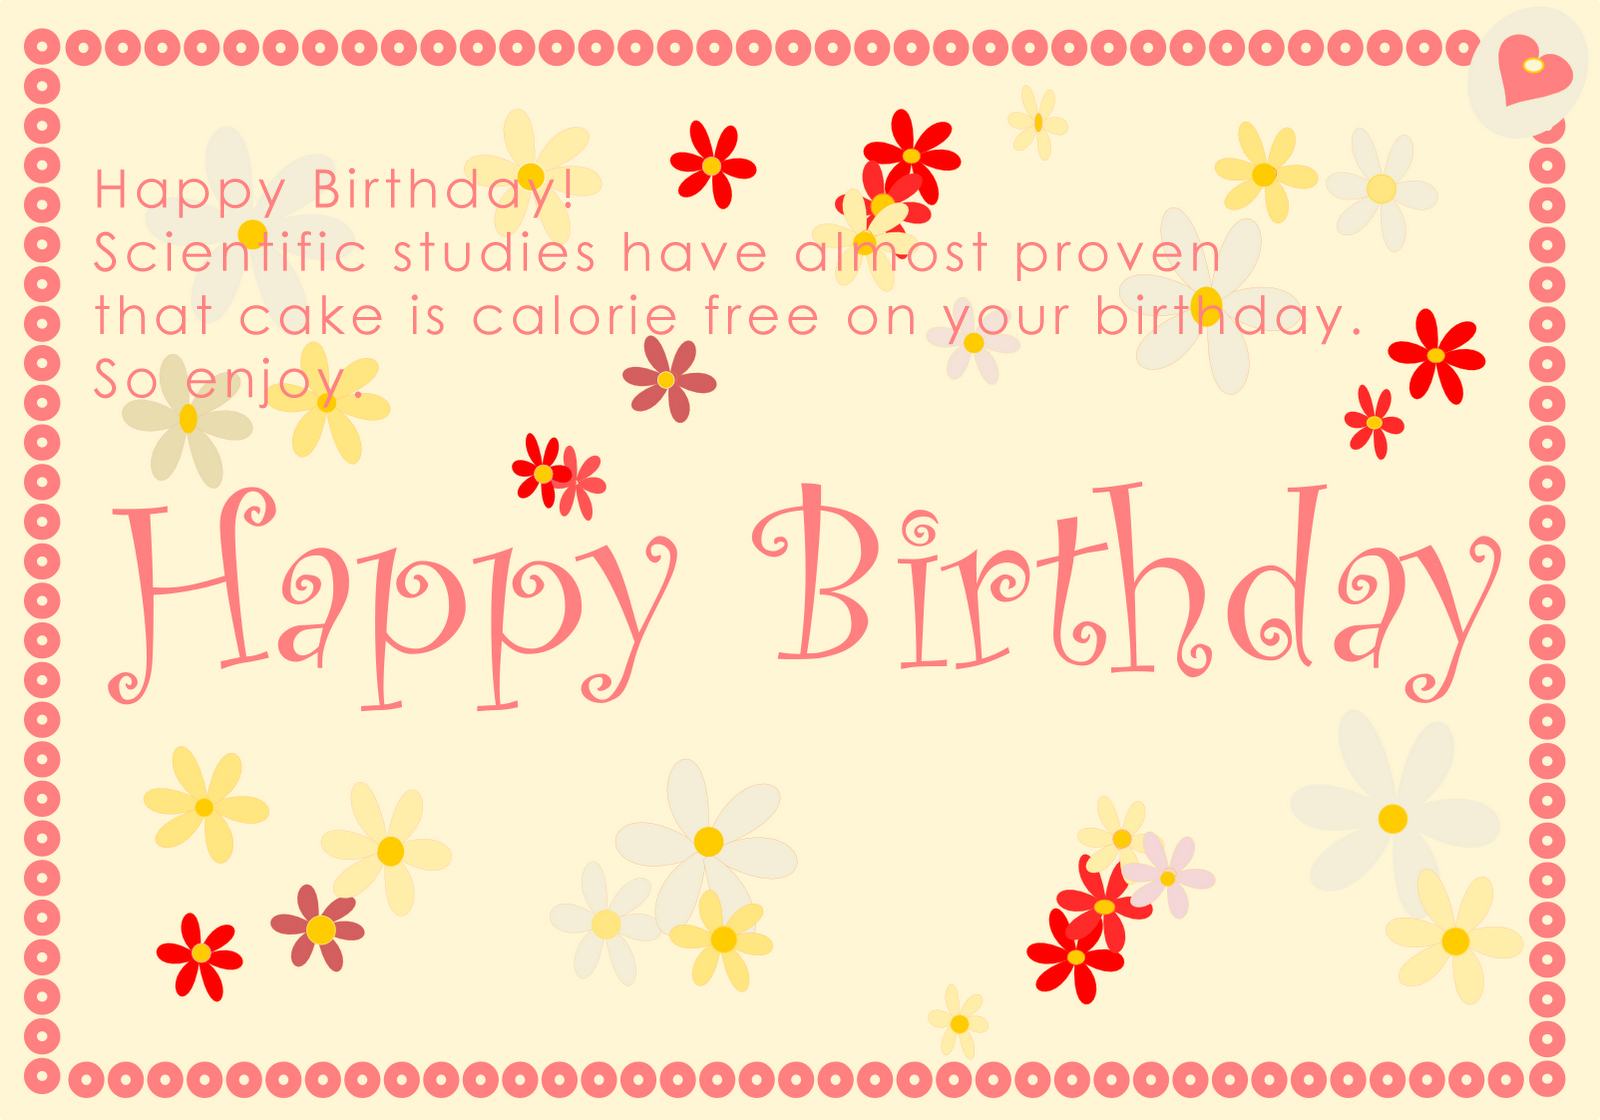 15 Best Birthday Card Messages and Wishes 1Birthday Greetings